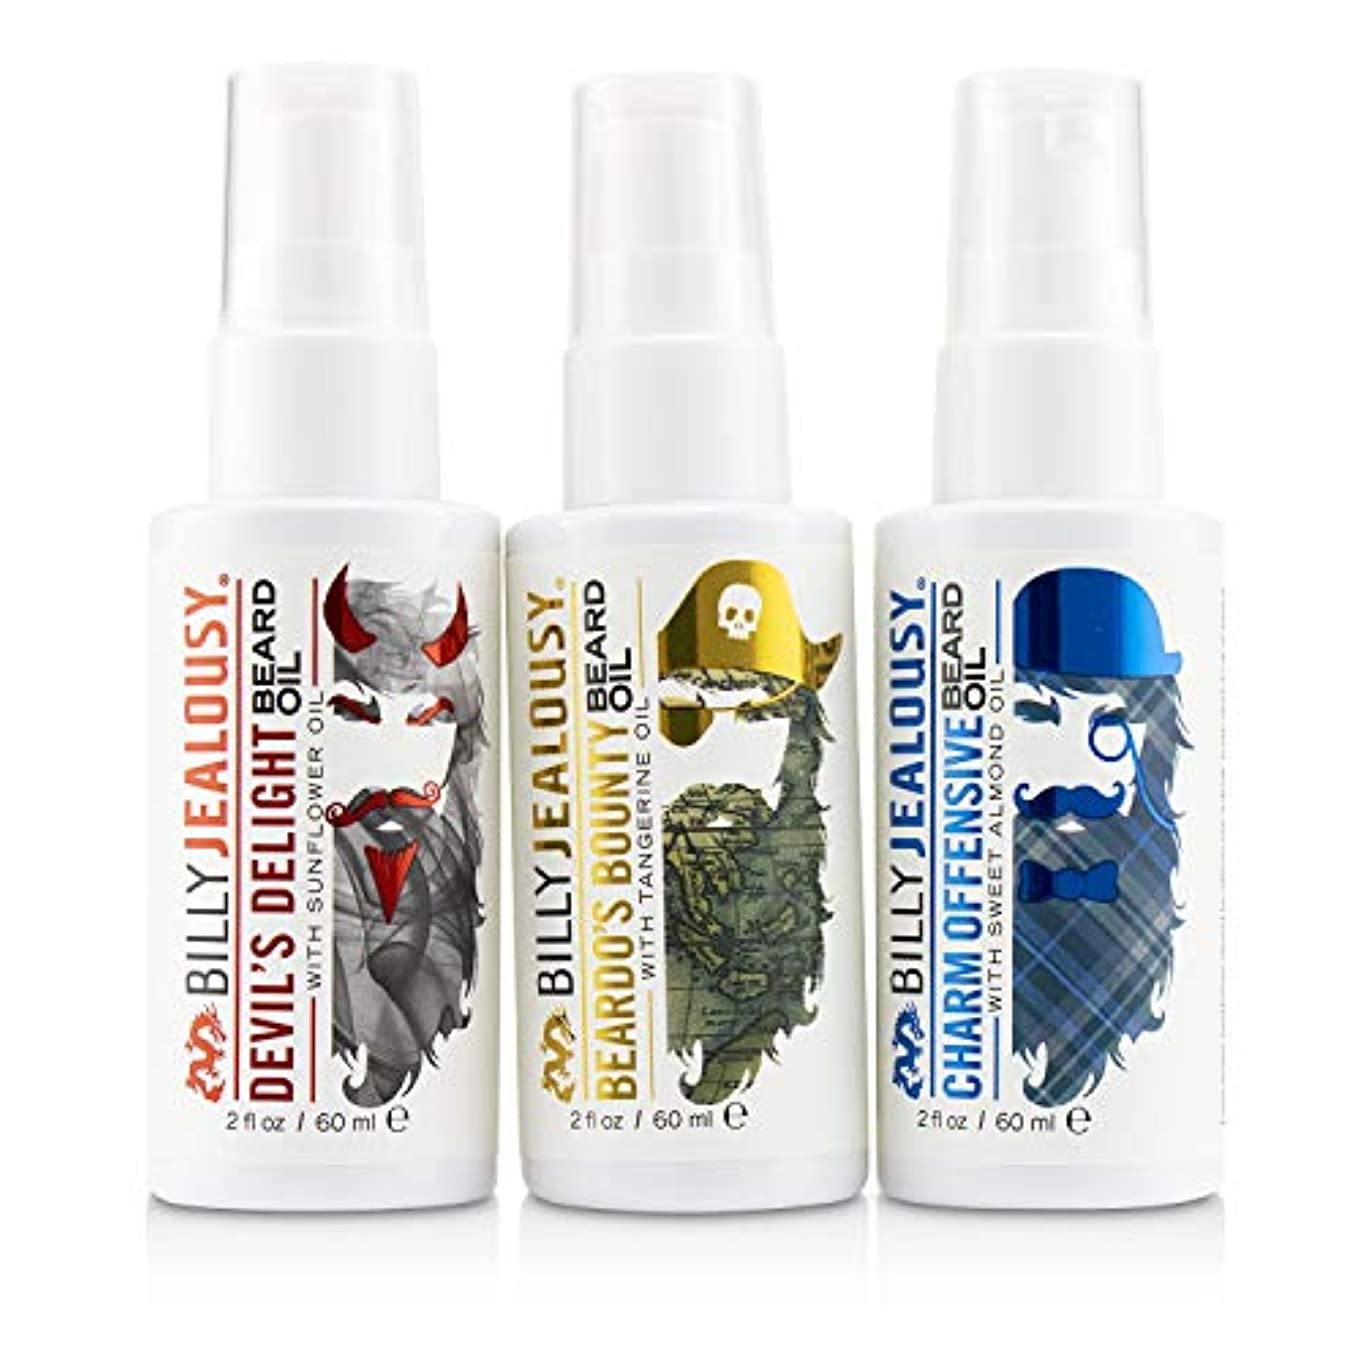 テーブルを設定する昆虫城ビリージェラシー 3 Amigos Beard Oil Trio Set : 1x Beardo's Bounty 60ml + 1x Devil's Delight 60ml + Charm Offensive 3pcs...